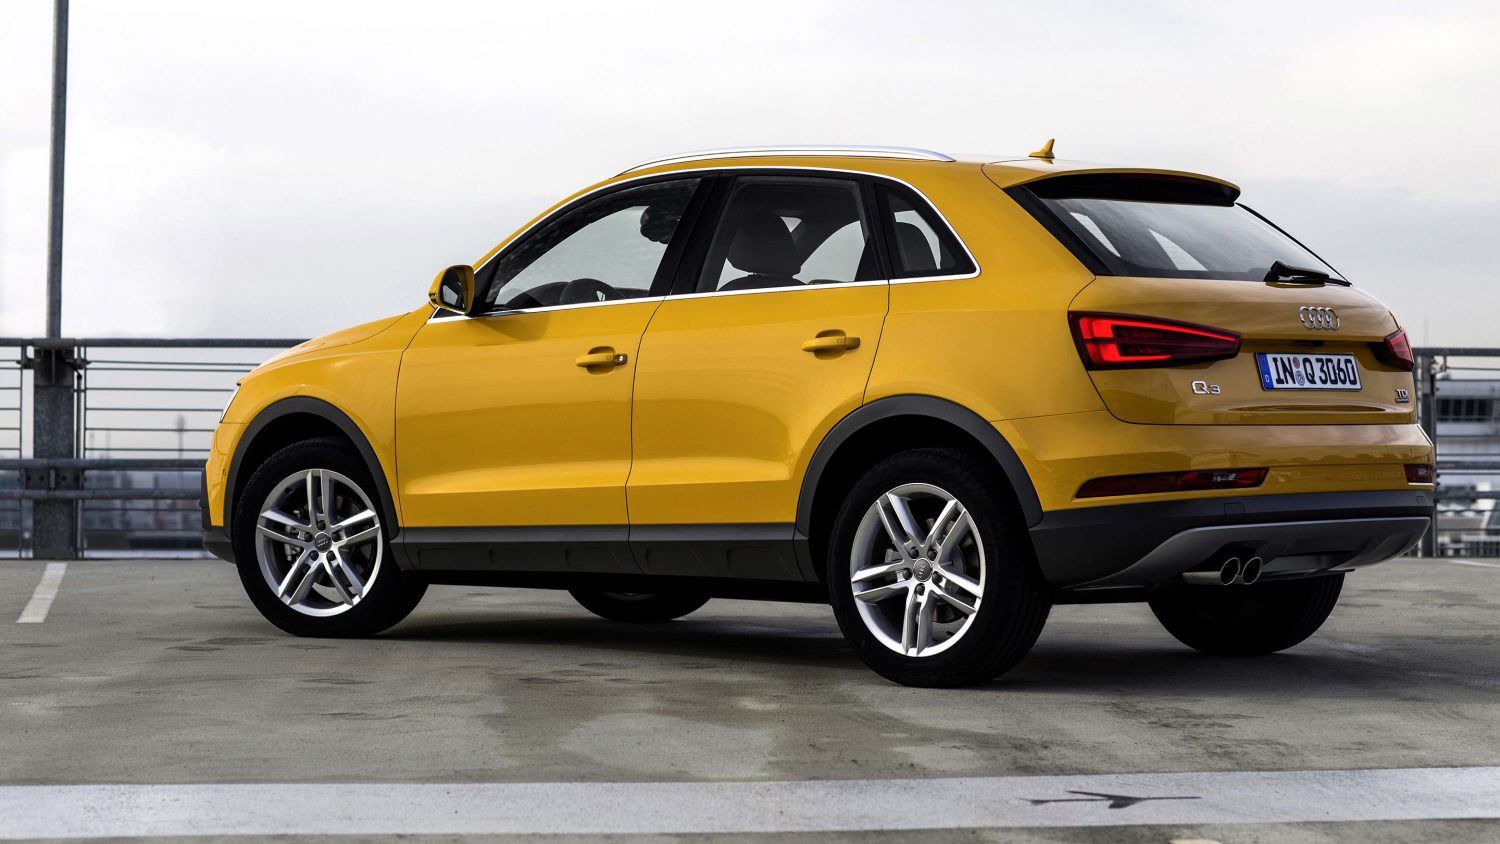 audi q3 2 0 tdi quattro sport 184 hk s tronic sixt leasing. Black Bedroom Furniture Sets. Home Design Ideas